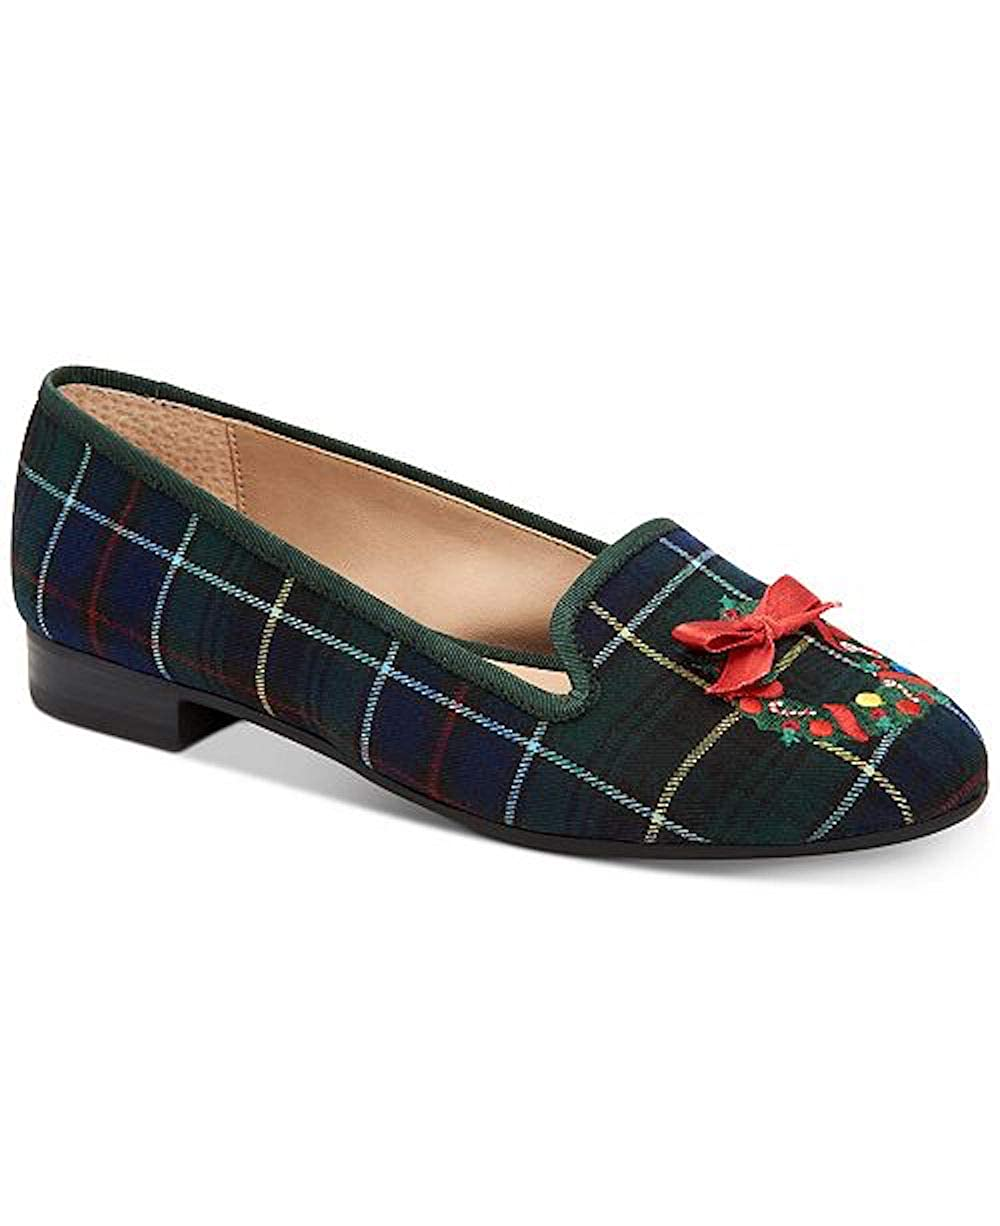 Navy Plaid Charter Club CC35 Femmiie Front Bow Slip On Loafer Flats, Black